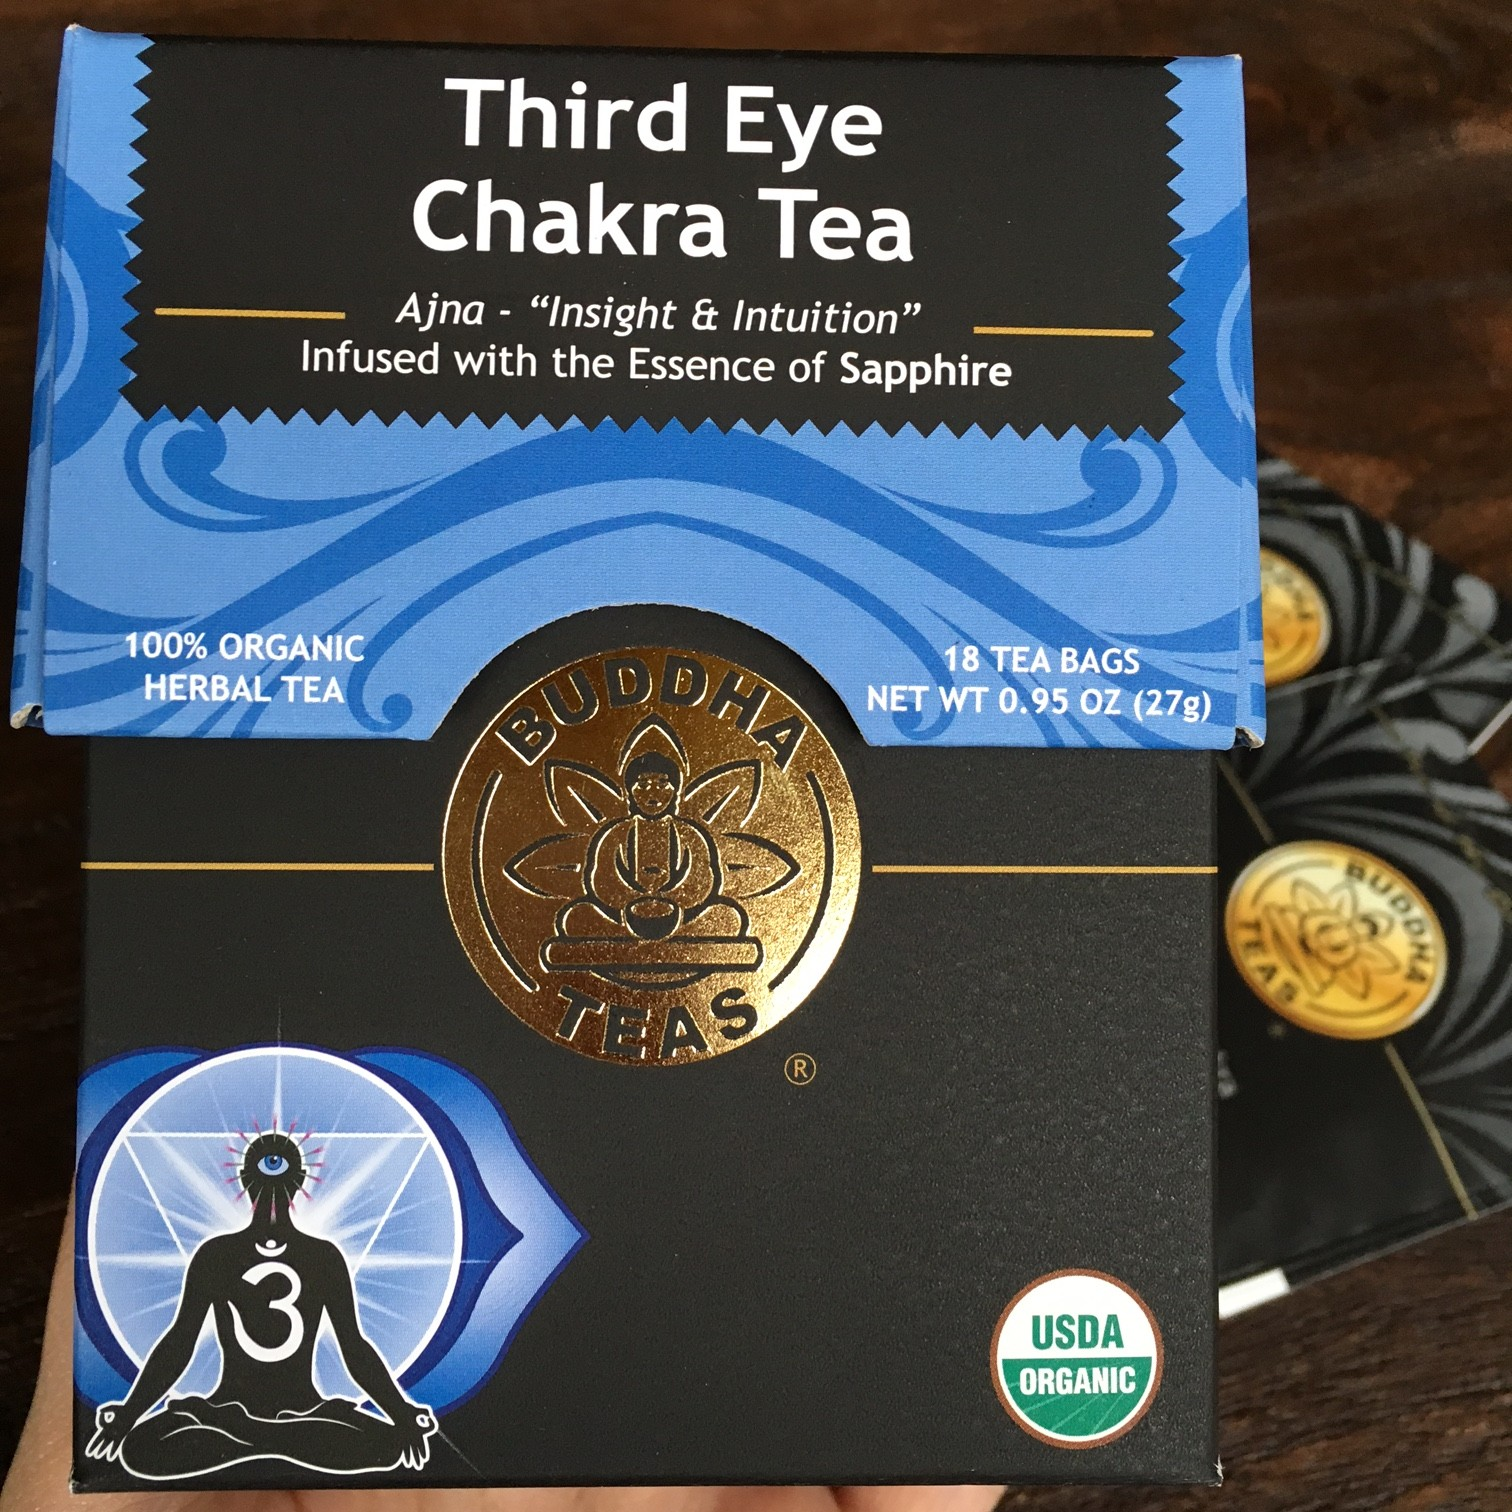 Buddha Teas Third Eye Chakra Tea